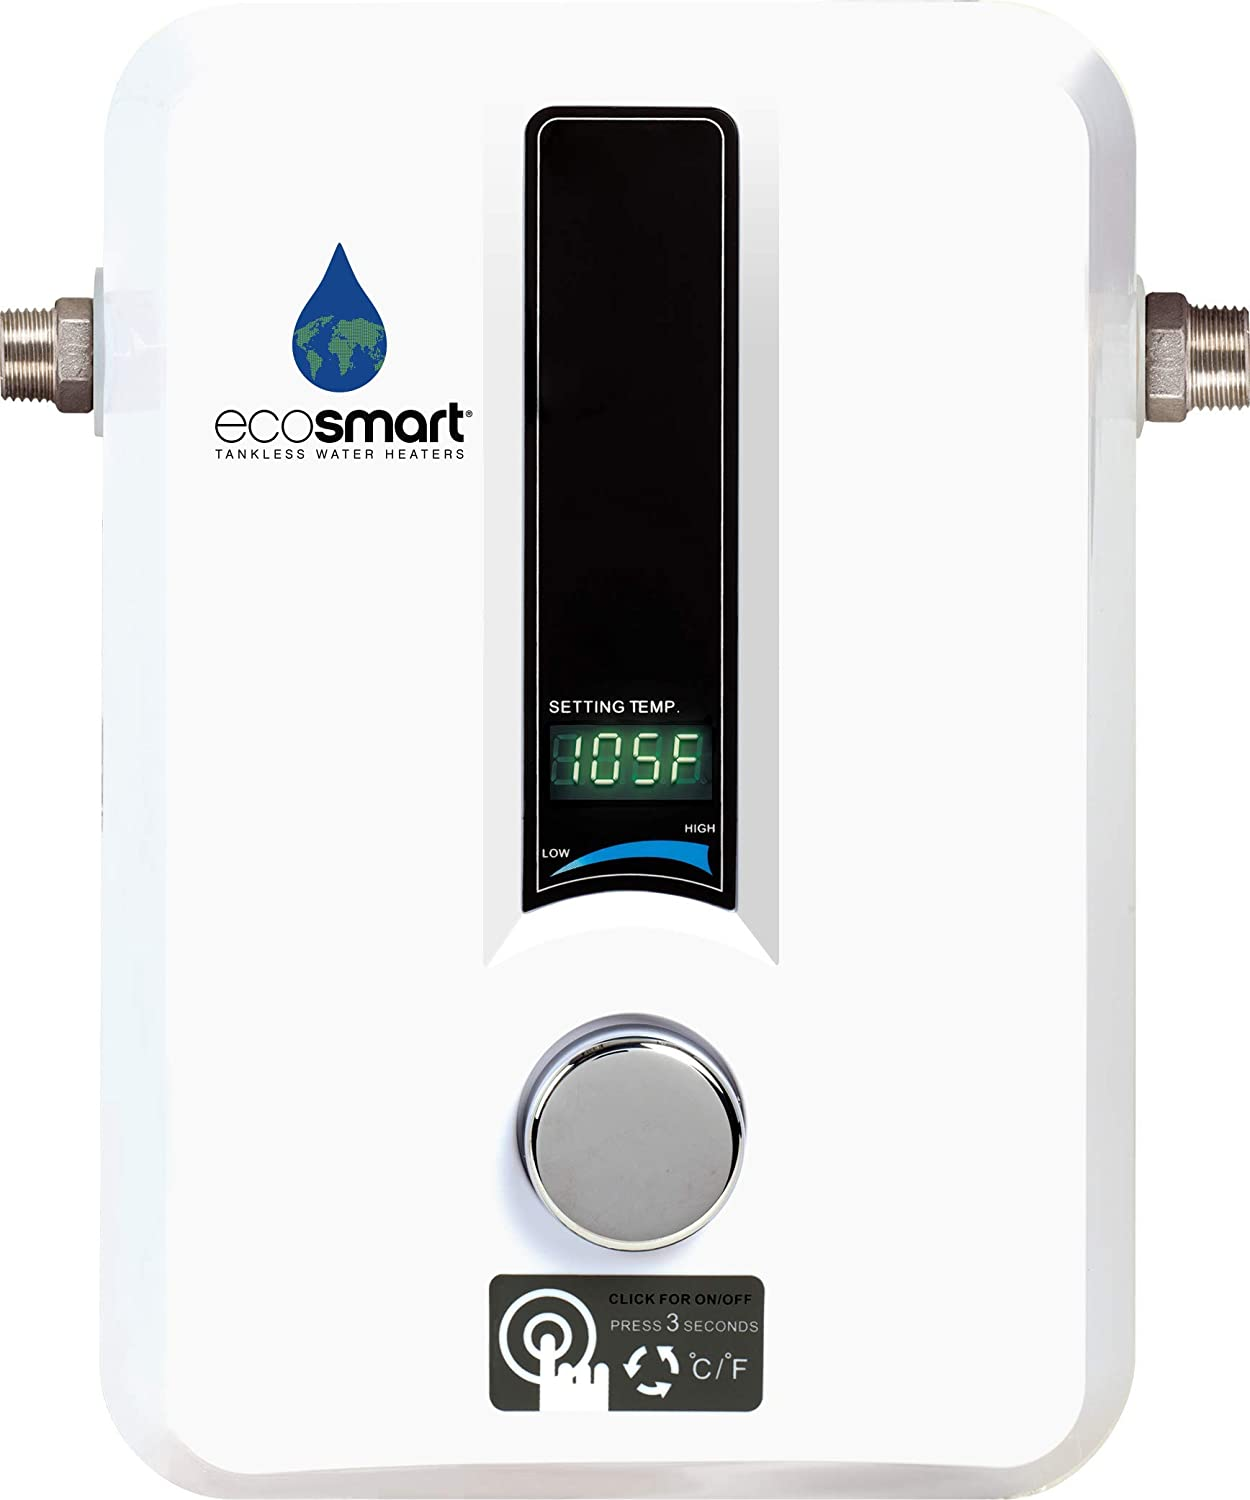 ECO 11 Electric Tankless Water Heater, Ecosmart, Ecosmart ECO 11, Tankless Water Heater, Water Heater